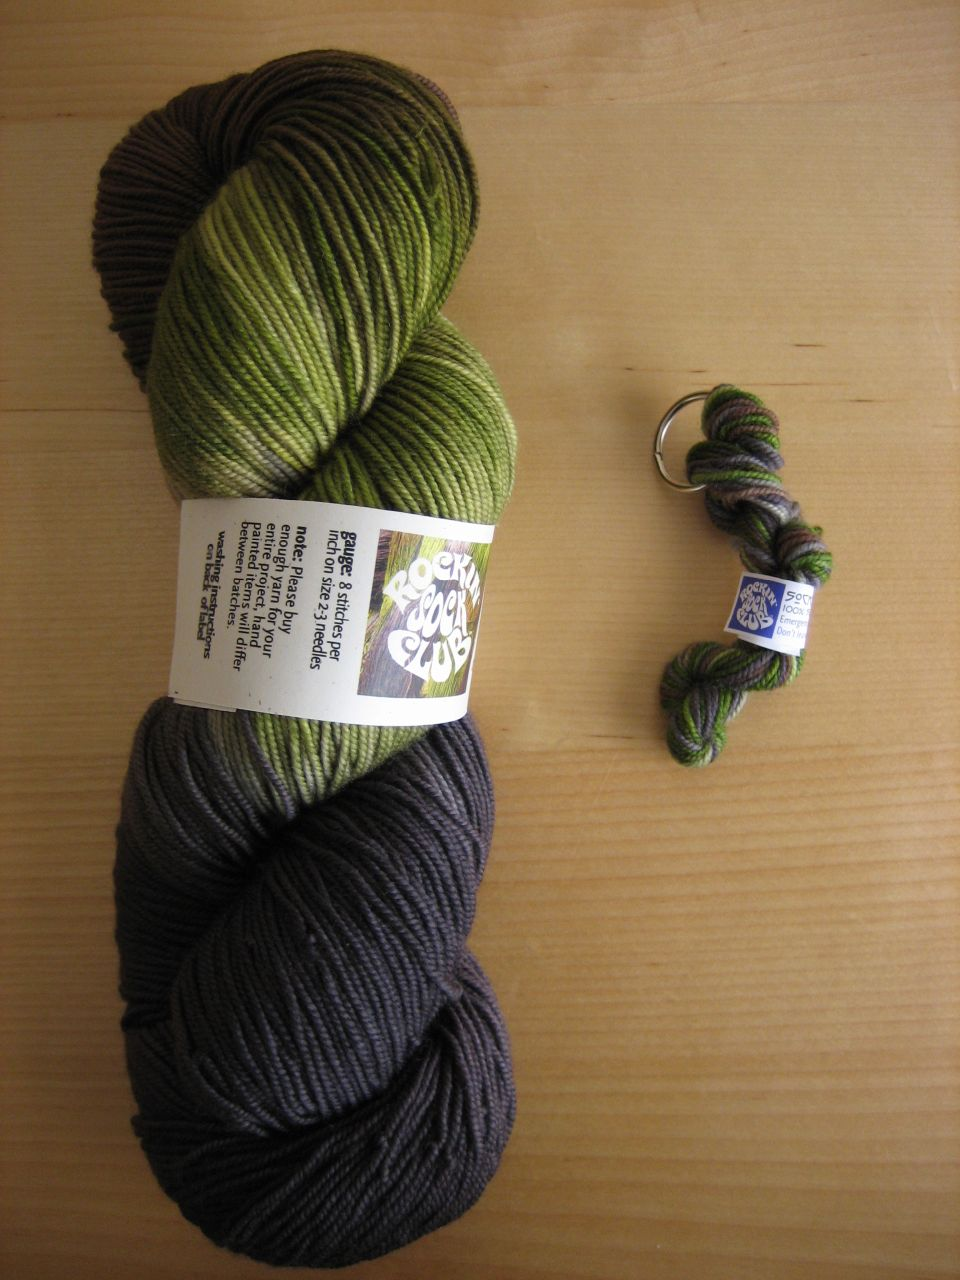 Monsoon STR yarn and emergency mini skein